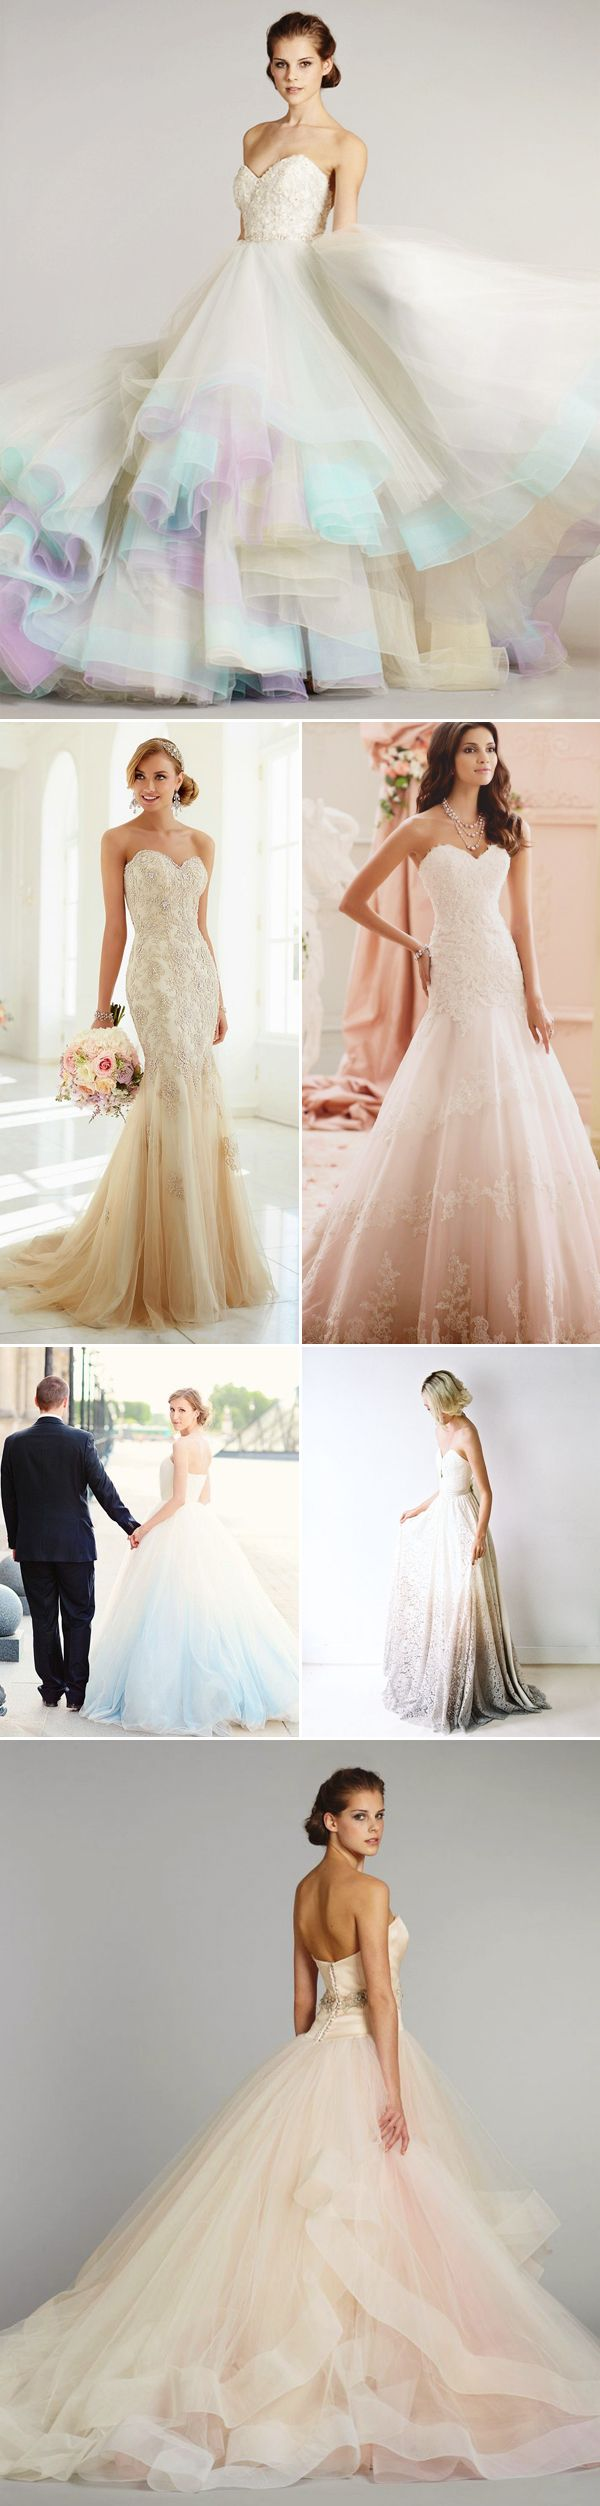 See sun shining through dress - 22 Barely Colorful Wedding Dresses With A Touch Of Color